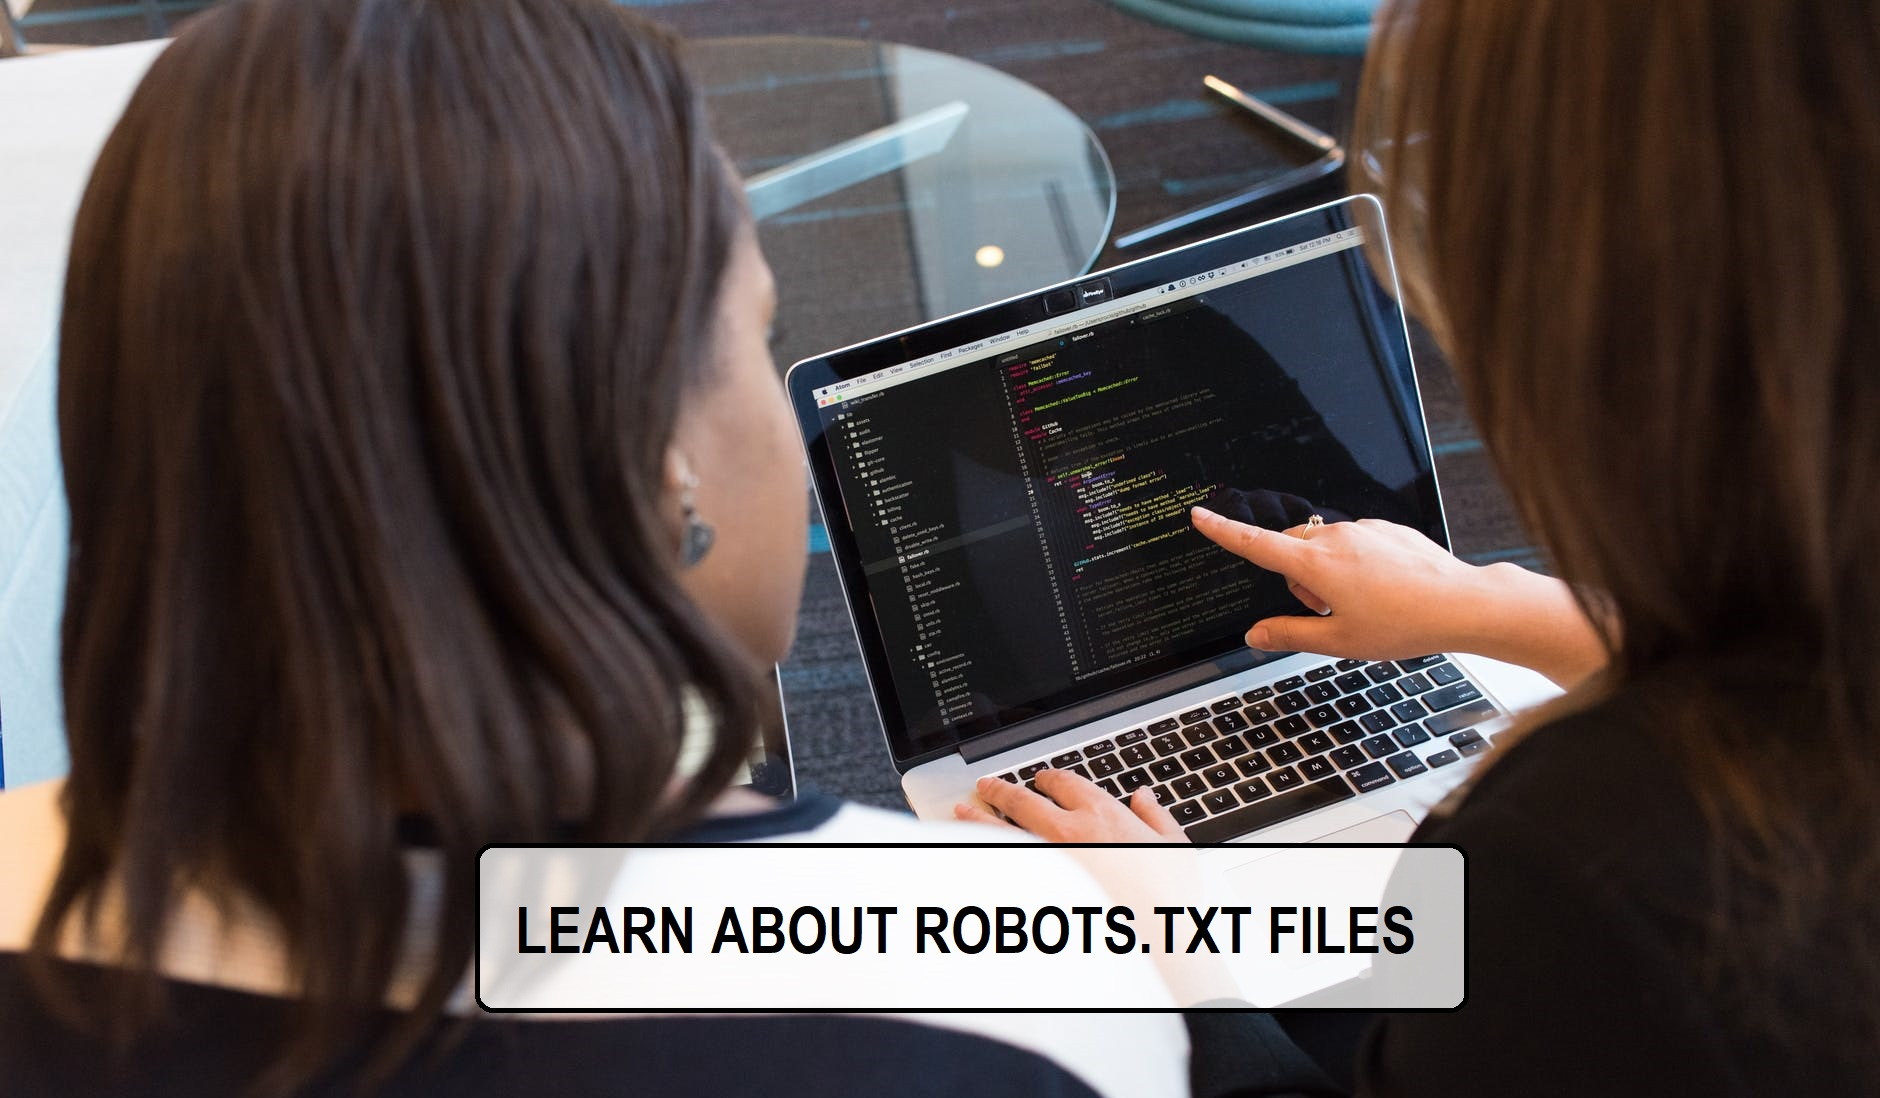 LEARN ABOUT ROBOTS.TXT FILES